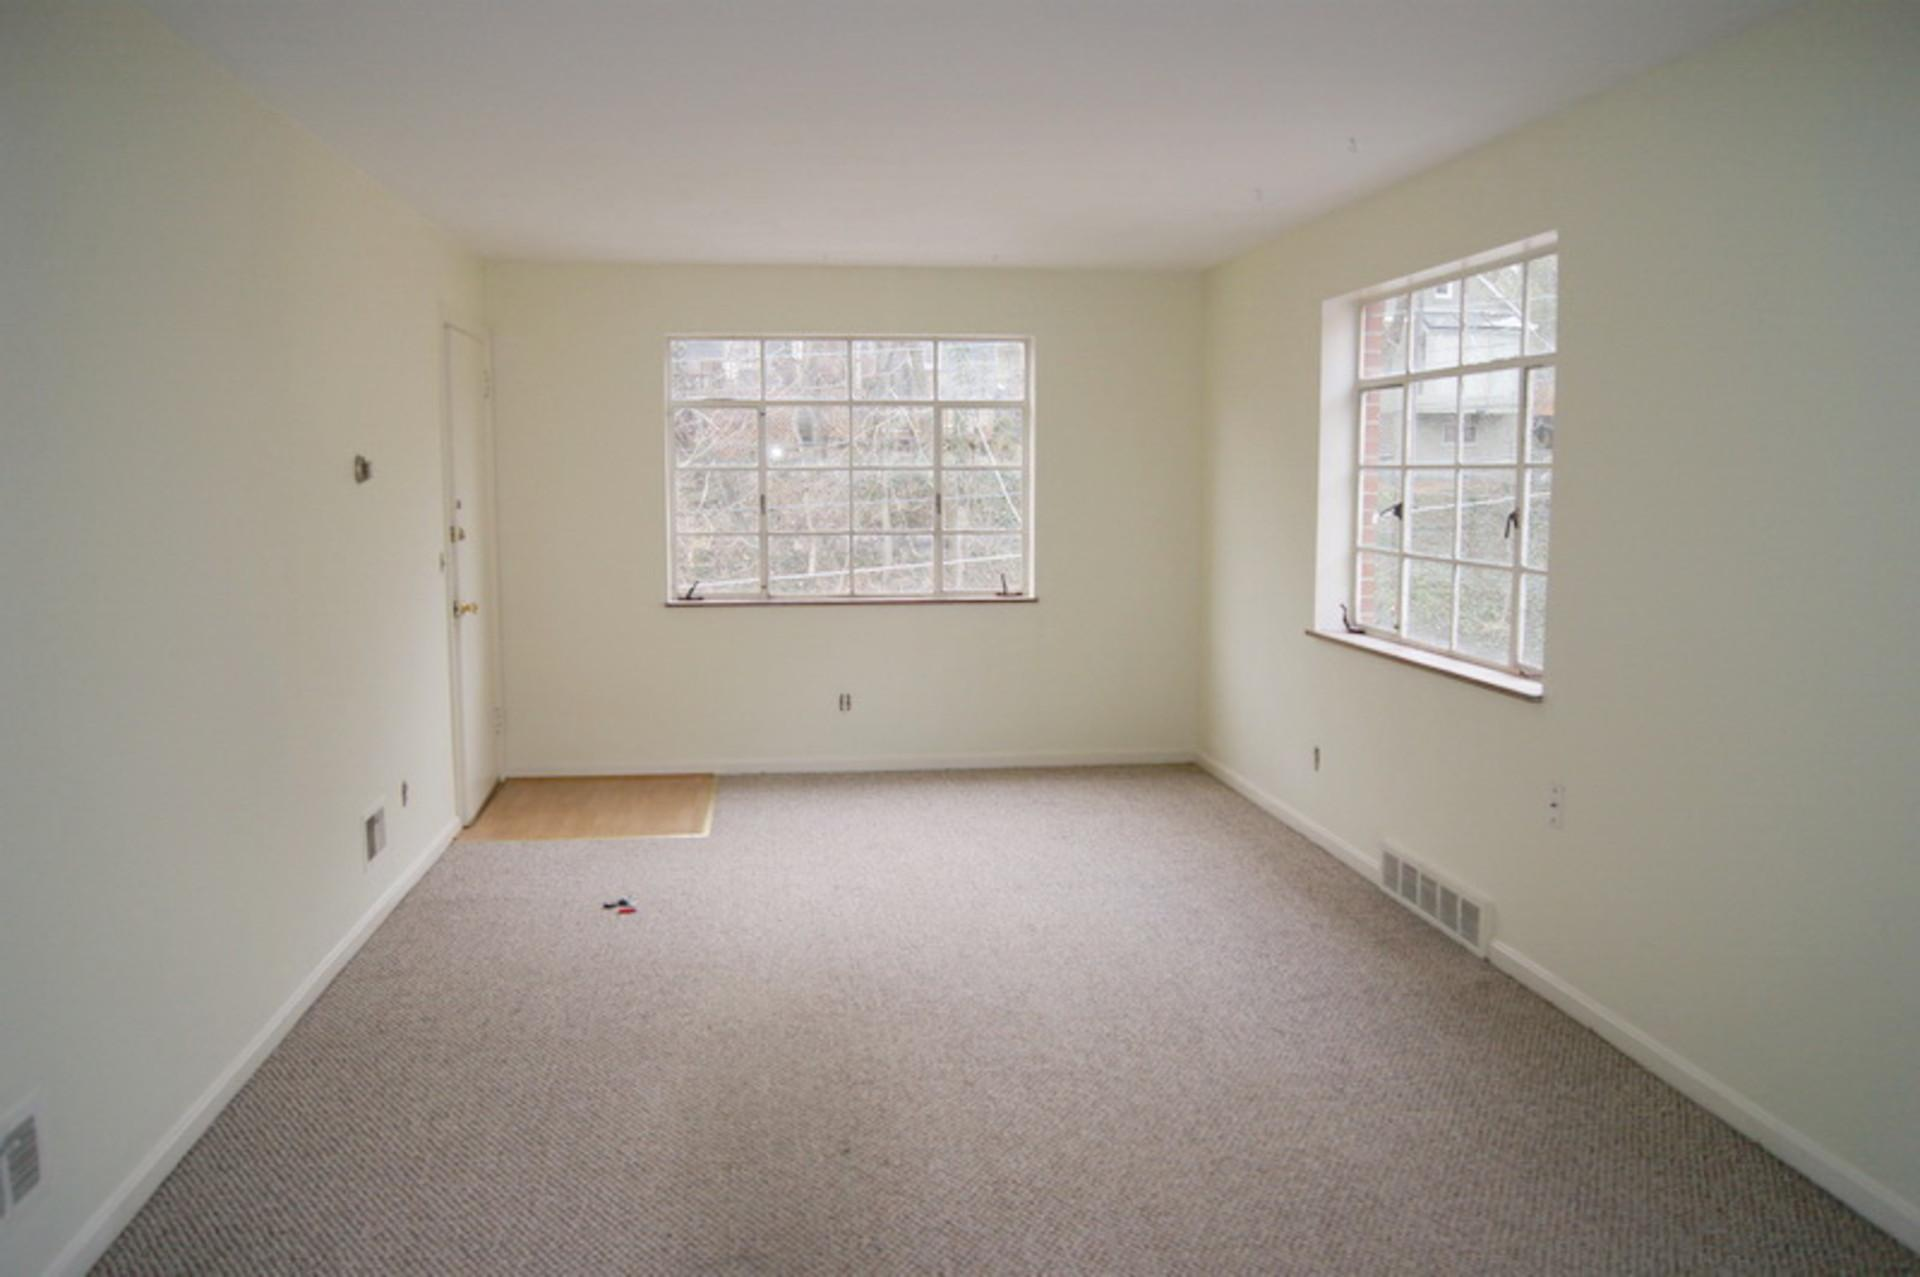 Spacious Two BR apartment in Mt. Lookout | Parking, heat, water and trash...